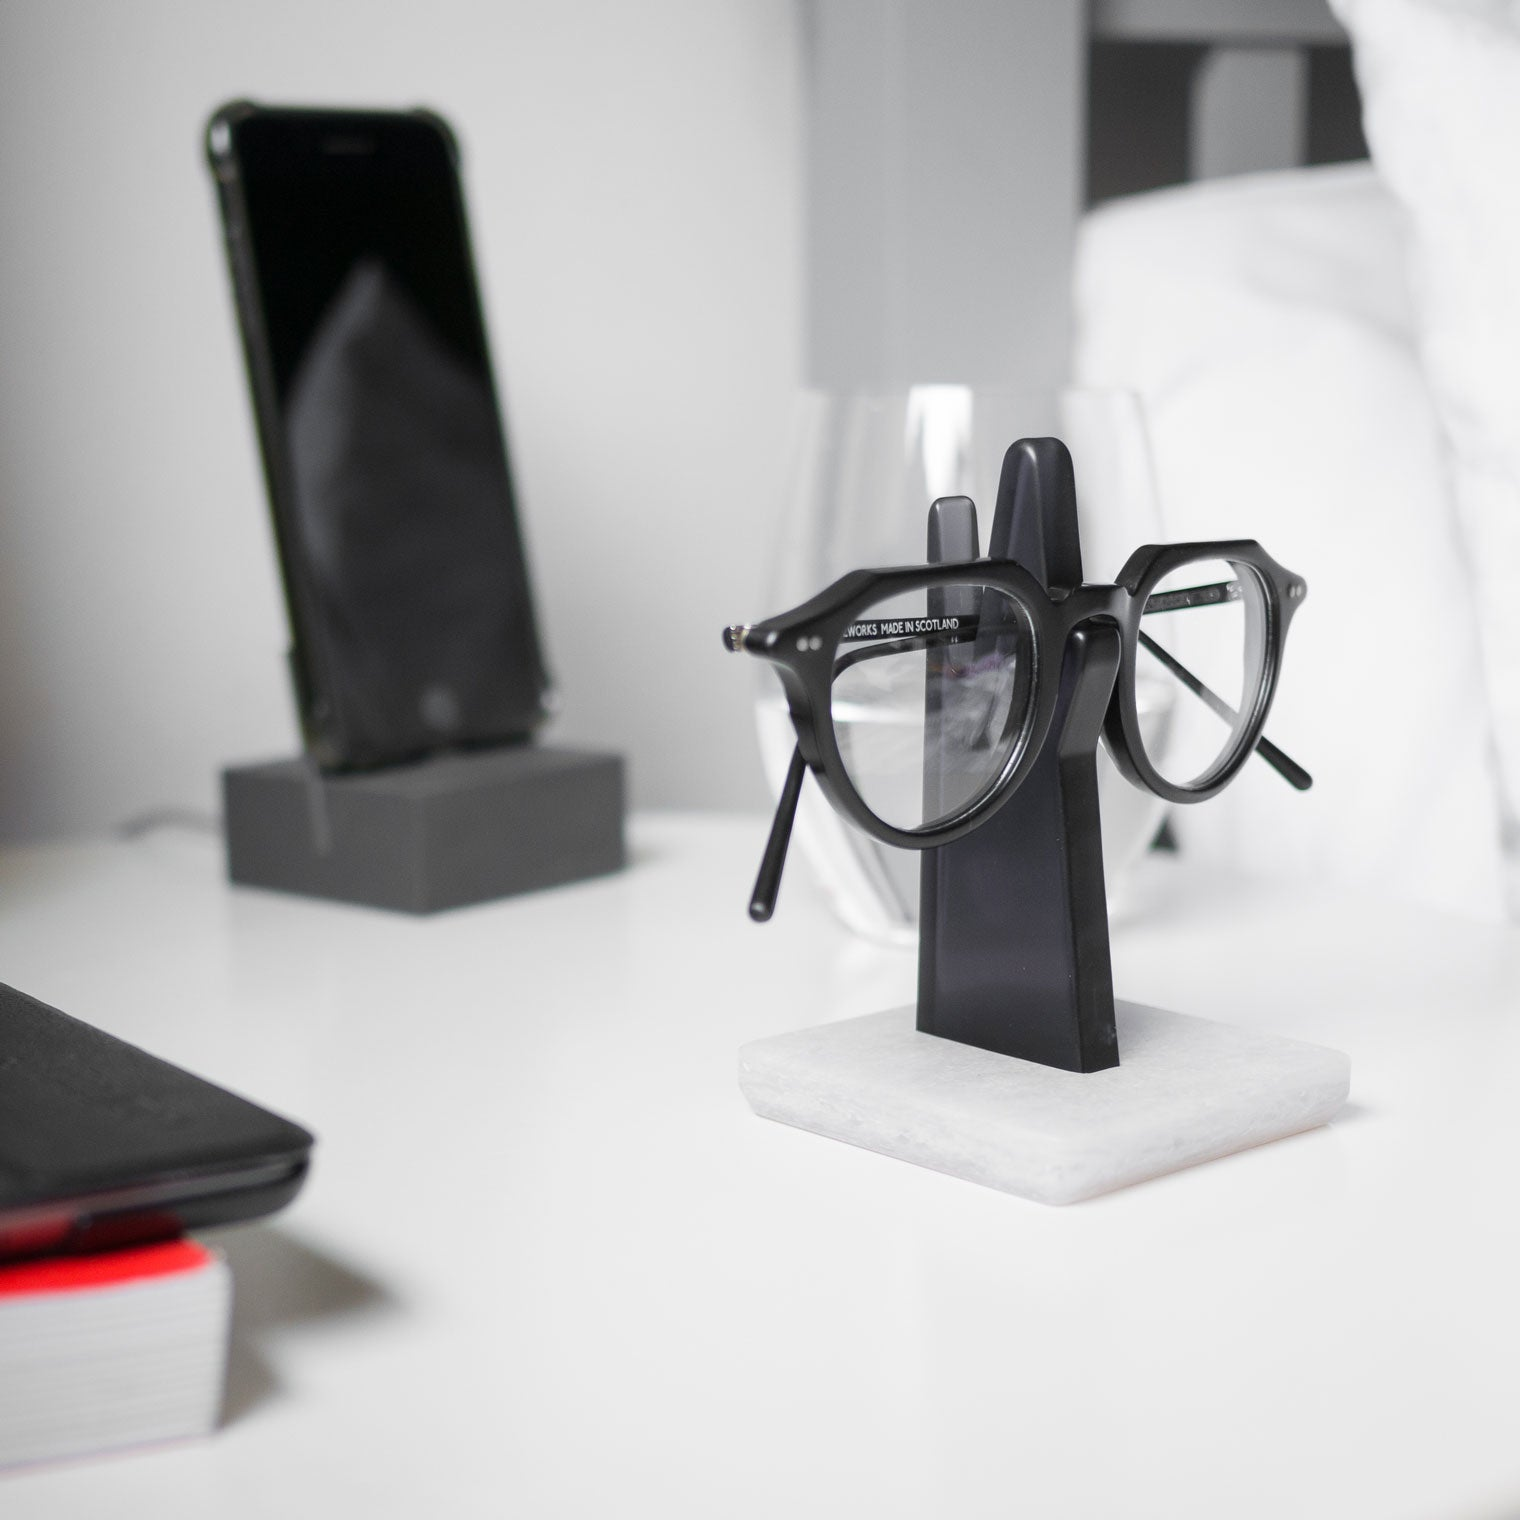 Glasses frame resting on grey spectacle stand in bedroom